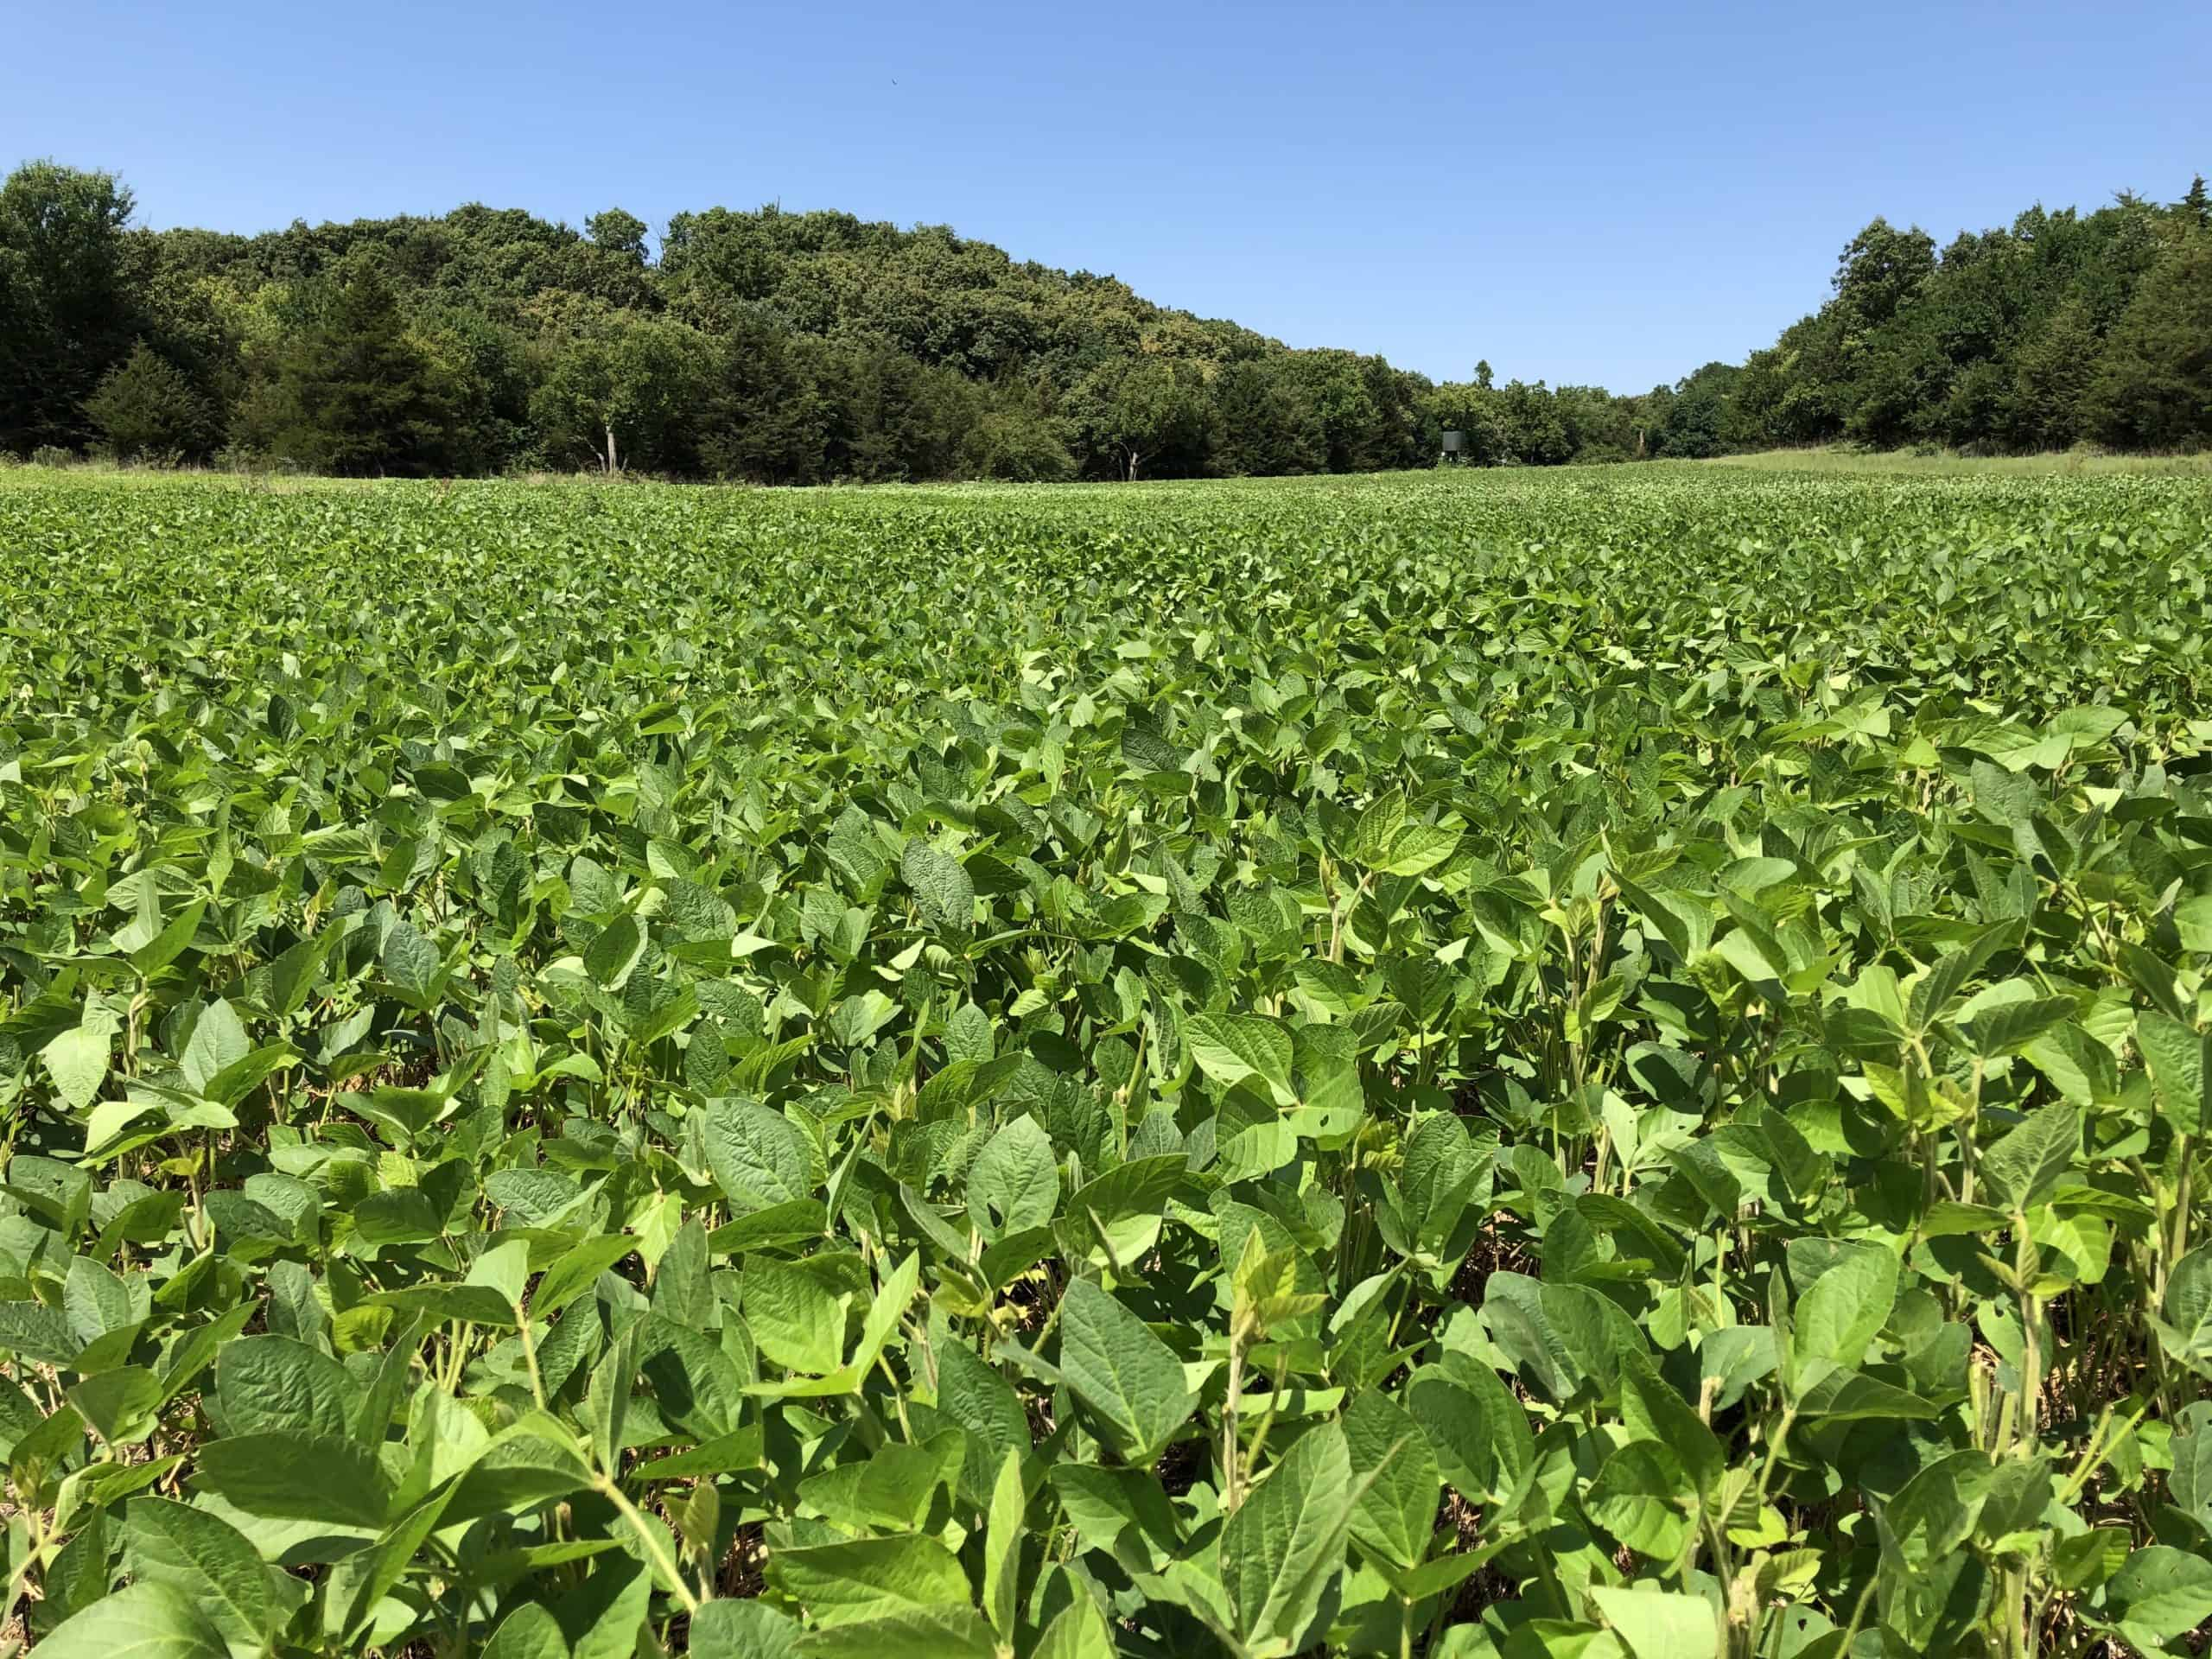 Soybeans are Tools, Not Food Plots